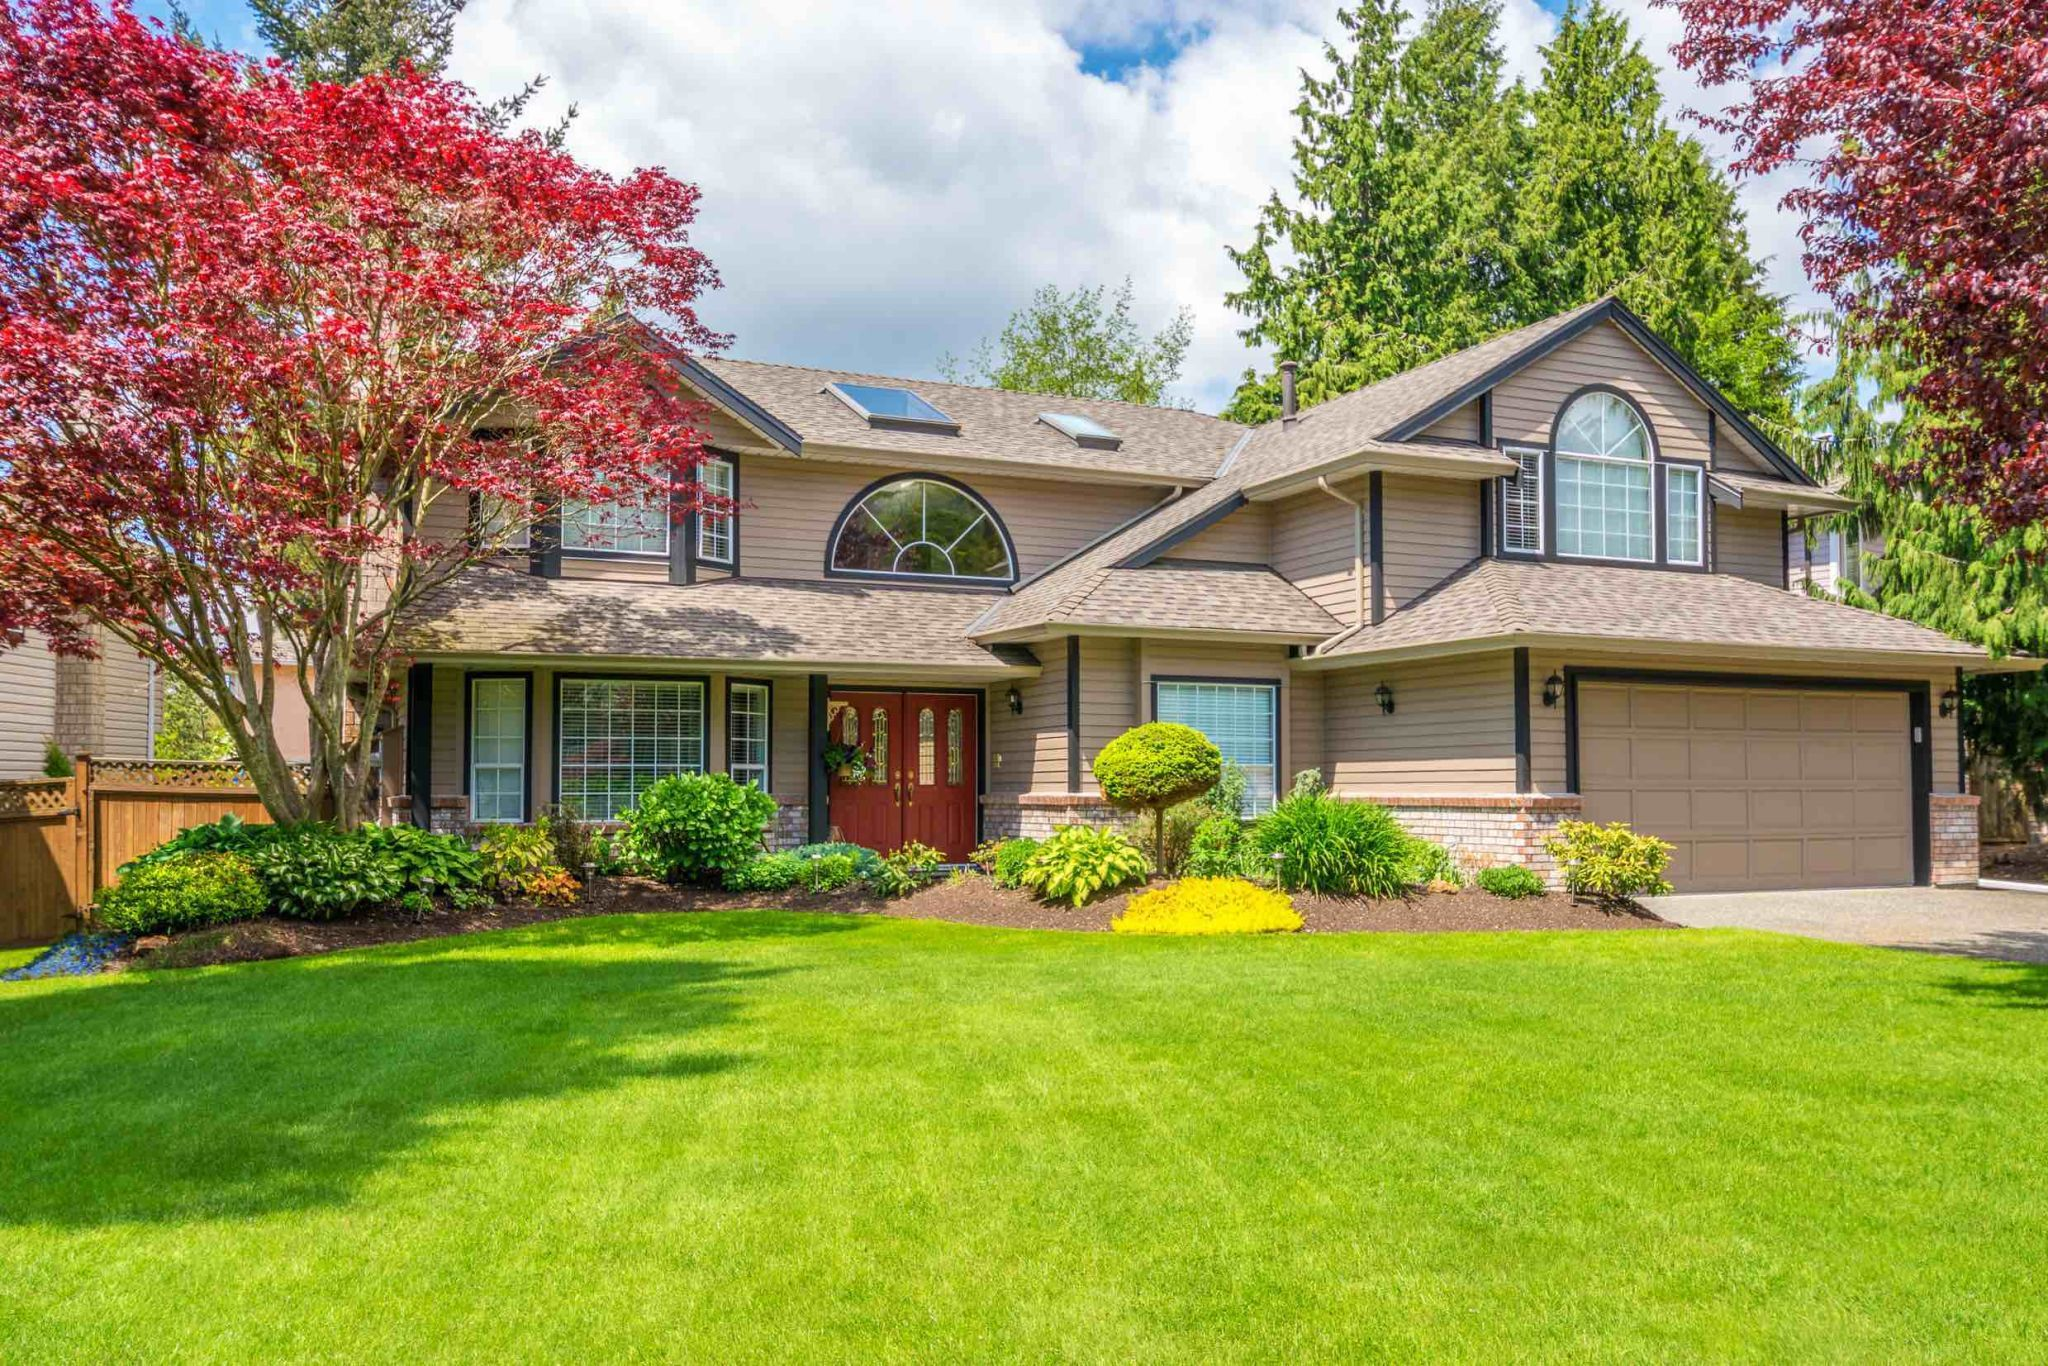 Getting Your House Ready For Appraisal Real Estate Home Appraisal Rental Property